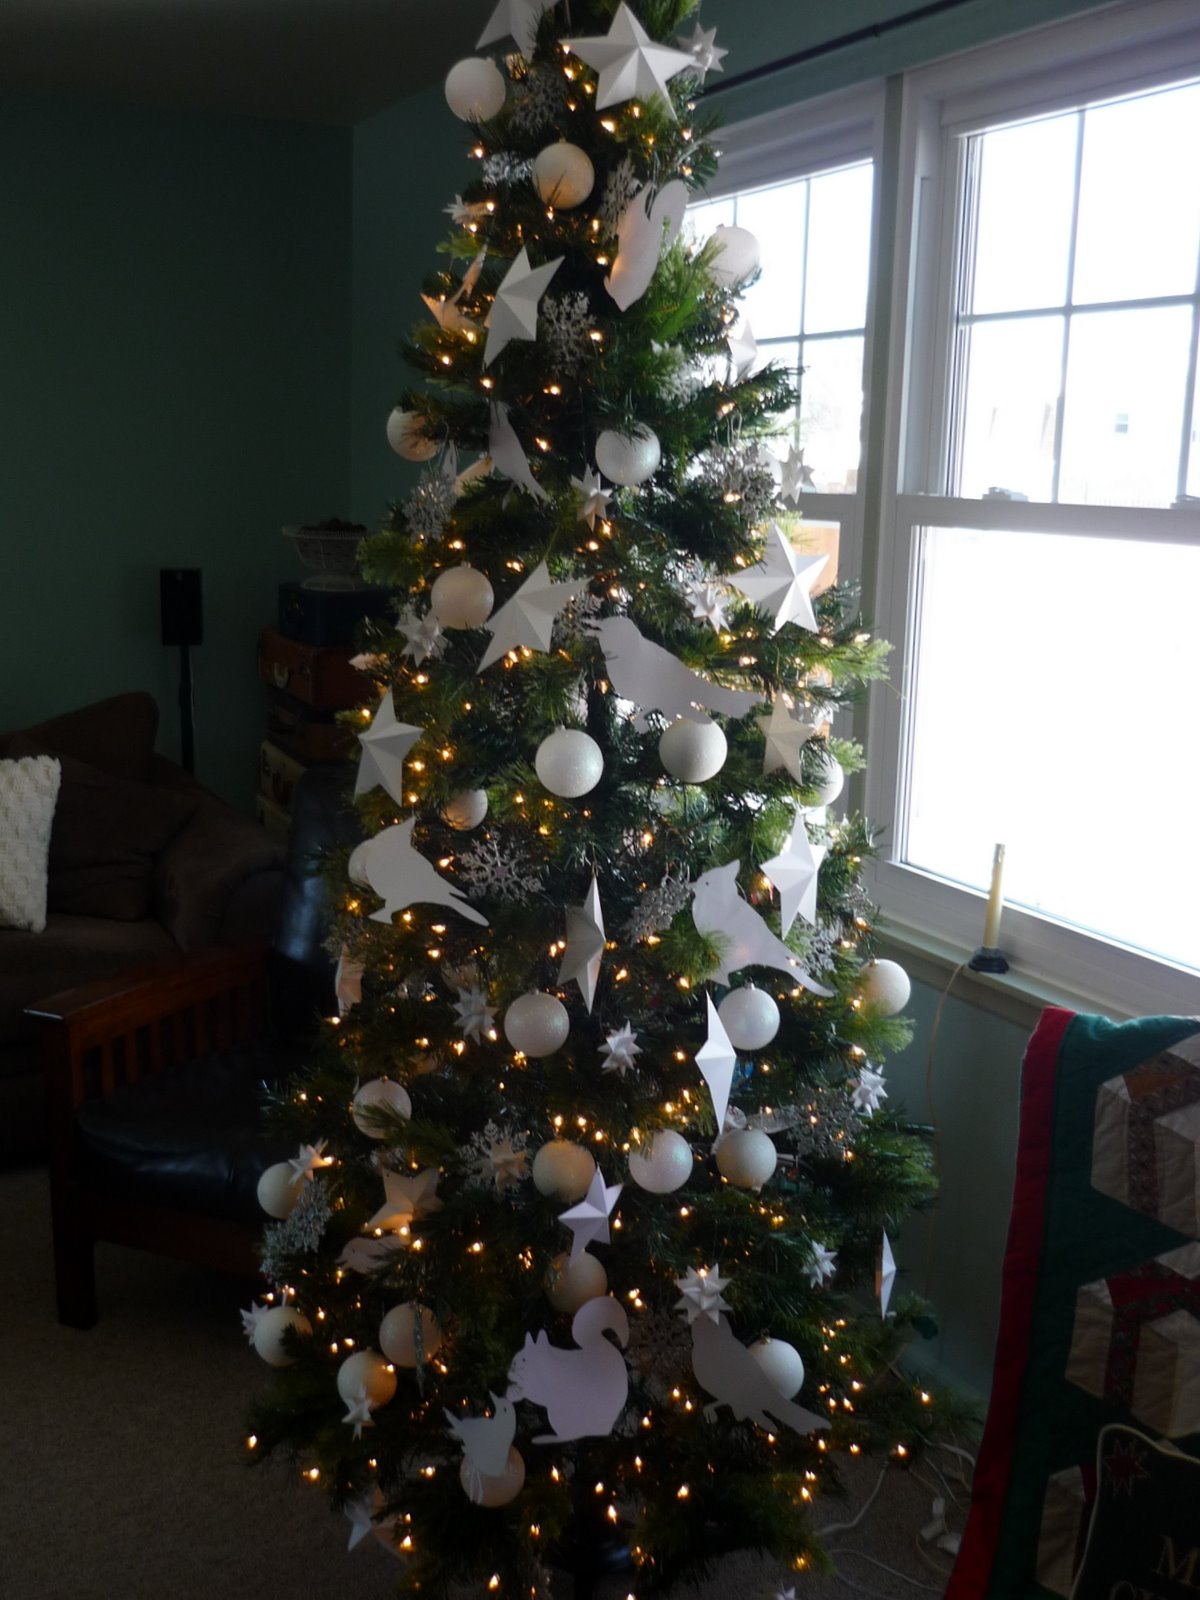 At Home in English Valley: Oh Christmas Tree!